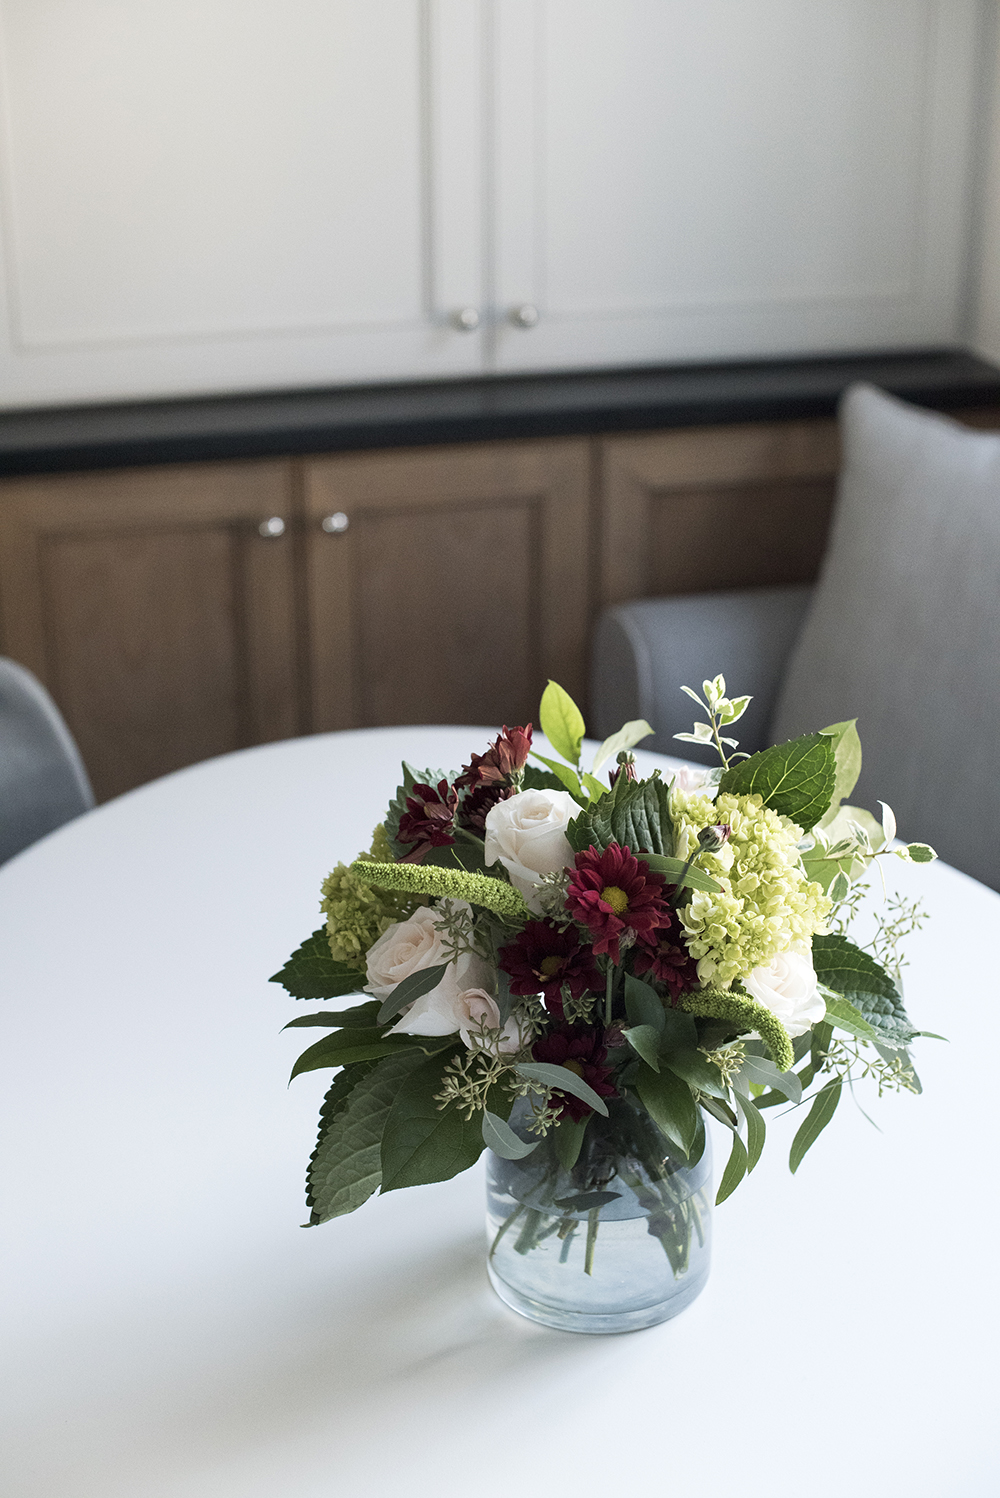 How to Create a Trader Joe's Floral Arrangement - roomfortuesday.com